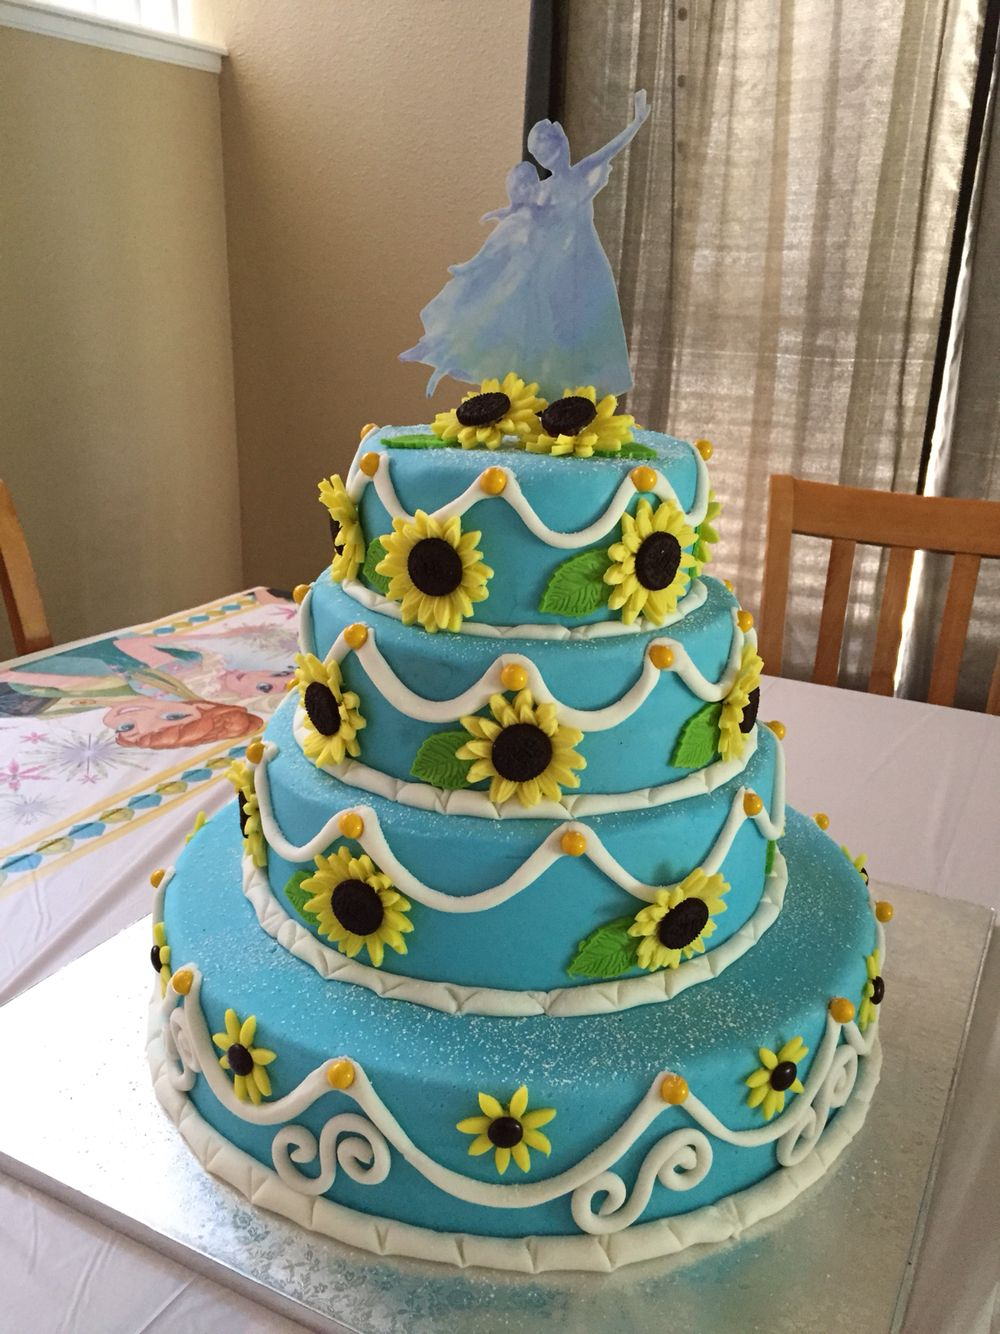 Frozen Fever Cake for my daughter's 5th Birthday Tortas